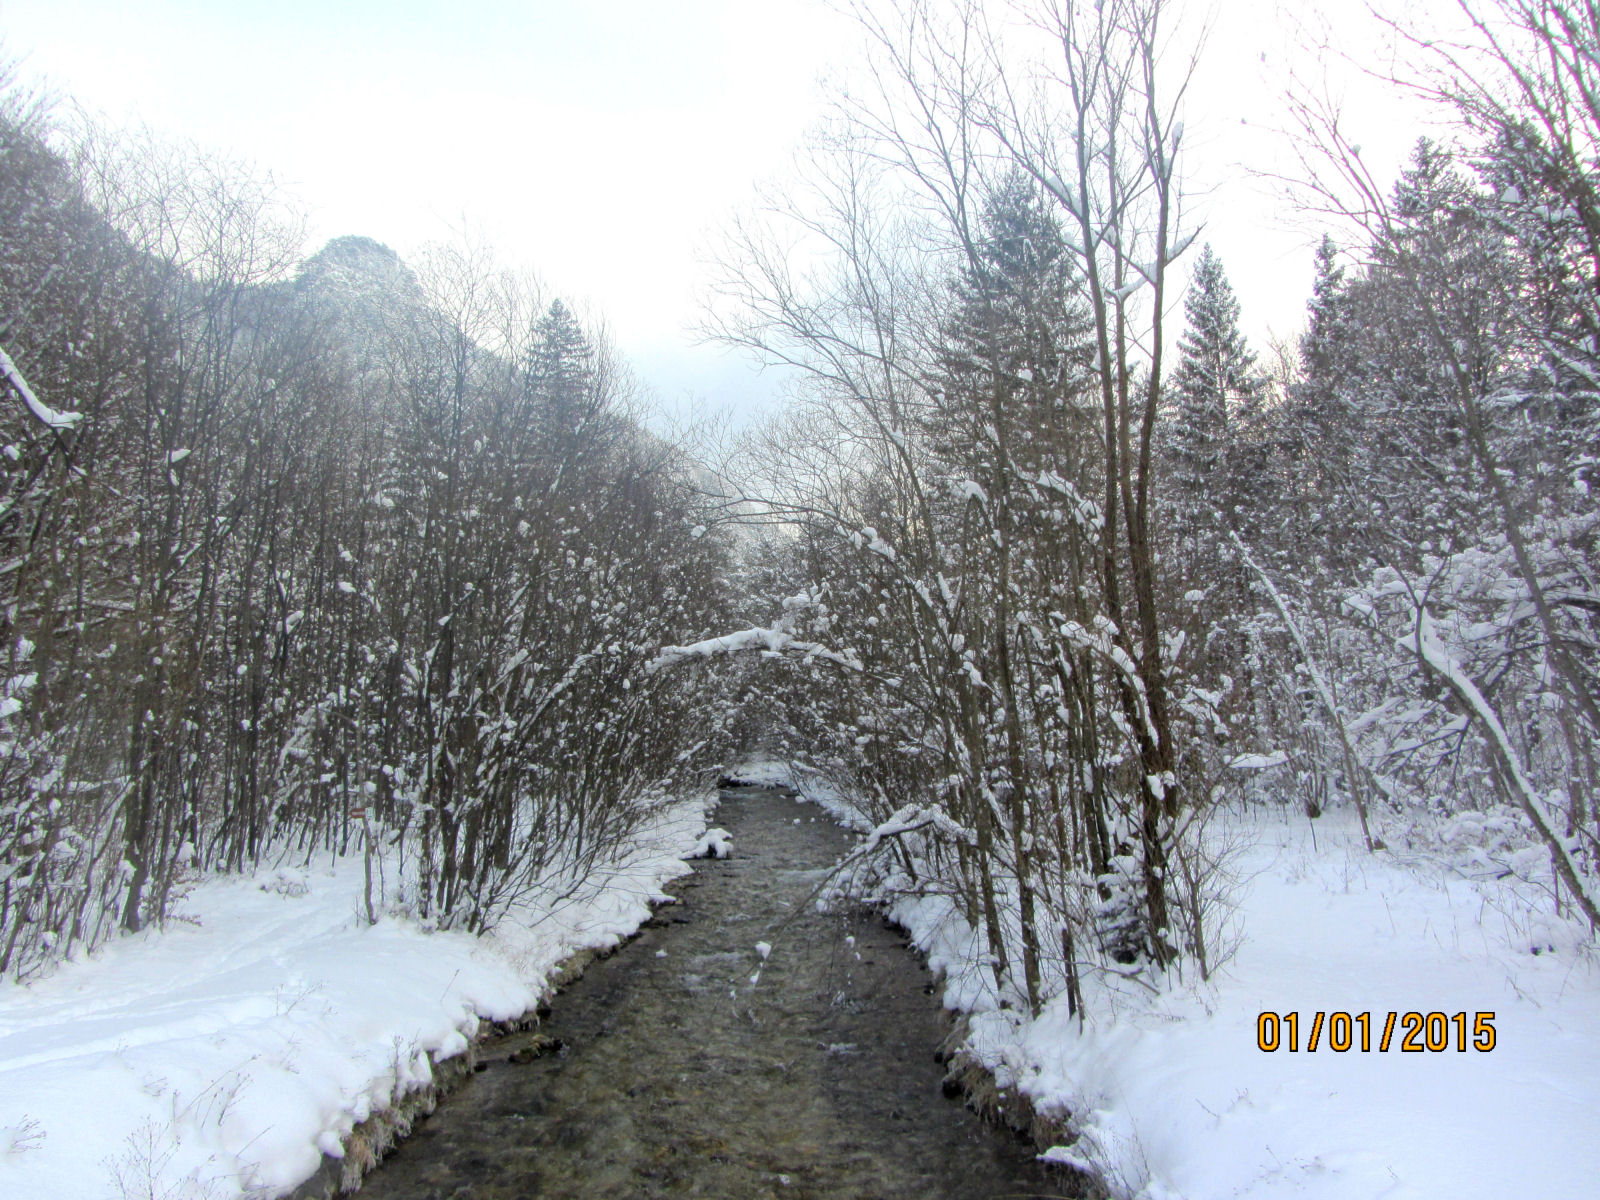 The Zavrsnica stream in winter